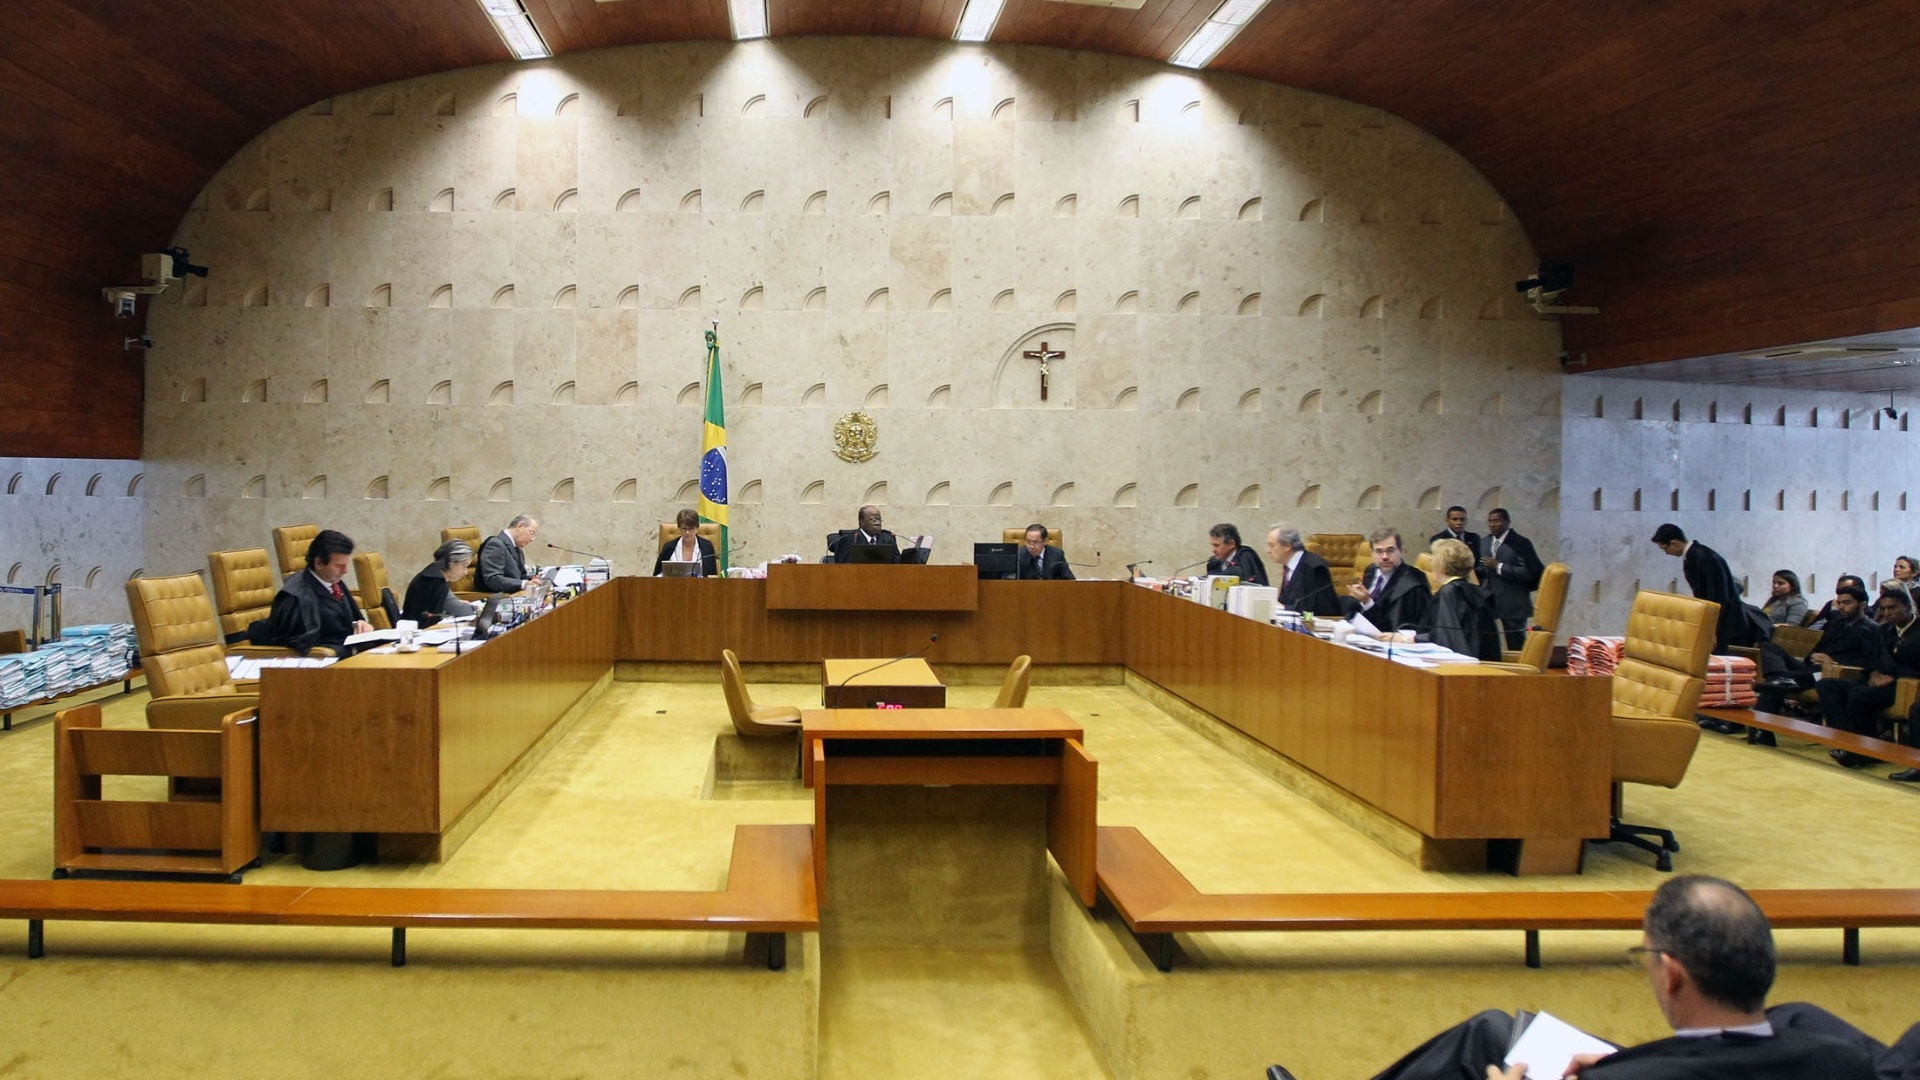 28.nov.2012 - Imagem do plenrio do STF (Supremo Tribunal Federal) durante sesso de julgamento do mensalo que dever fixar as penas do deputado federal Joo Paulo Cunha (PT-SP),  do ex-deputado federal Roberto Jefferson (PTB-RJ) e do ex-tesoureiro do PTB Emerson Palmieri